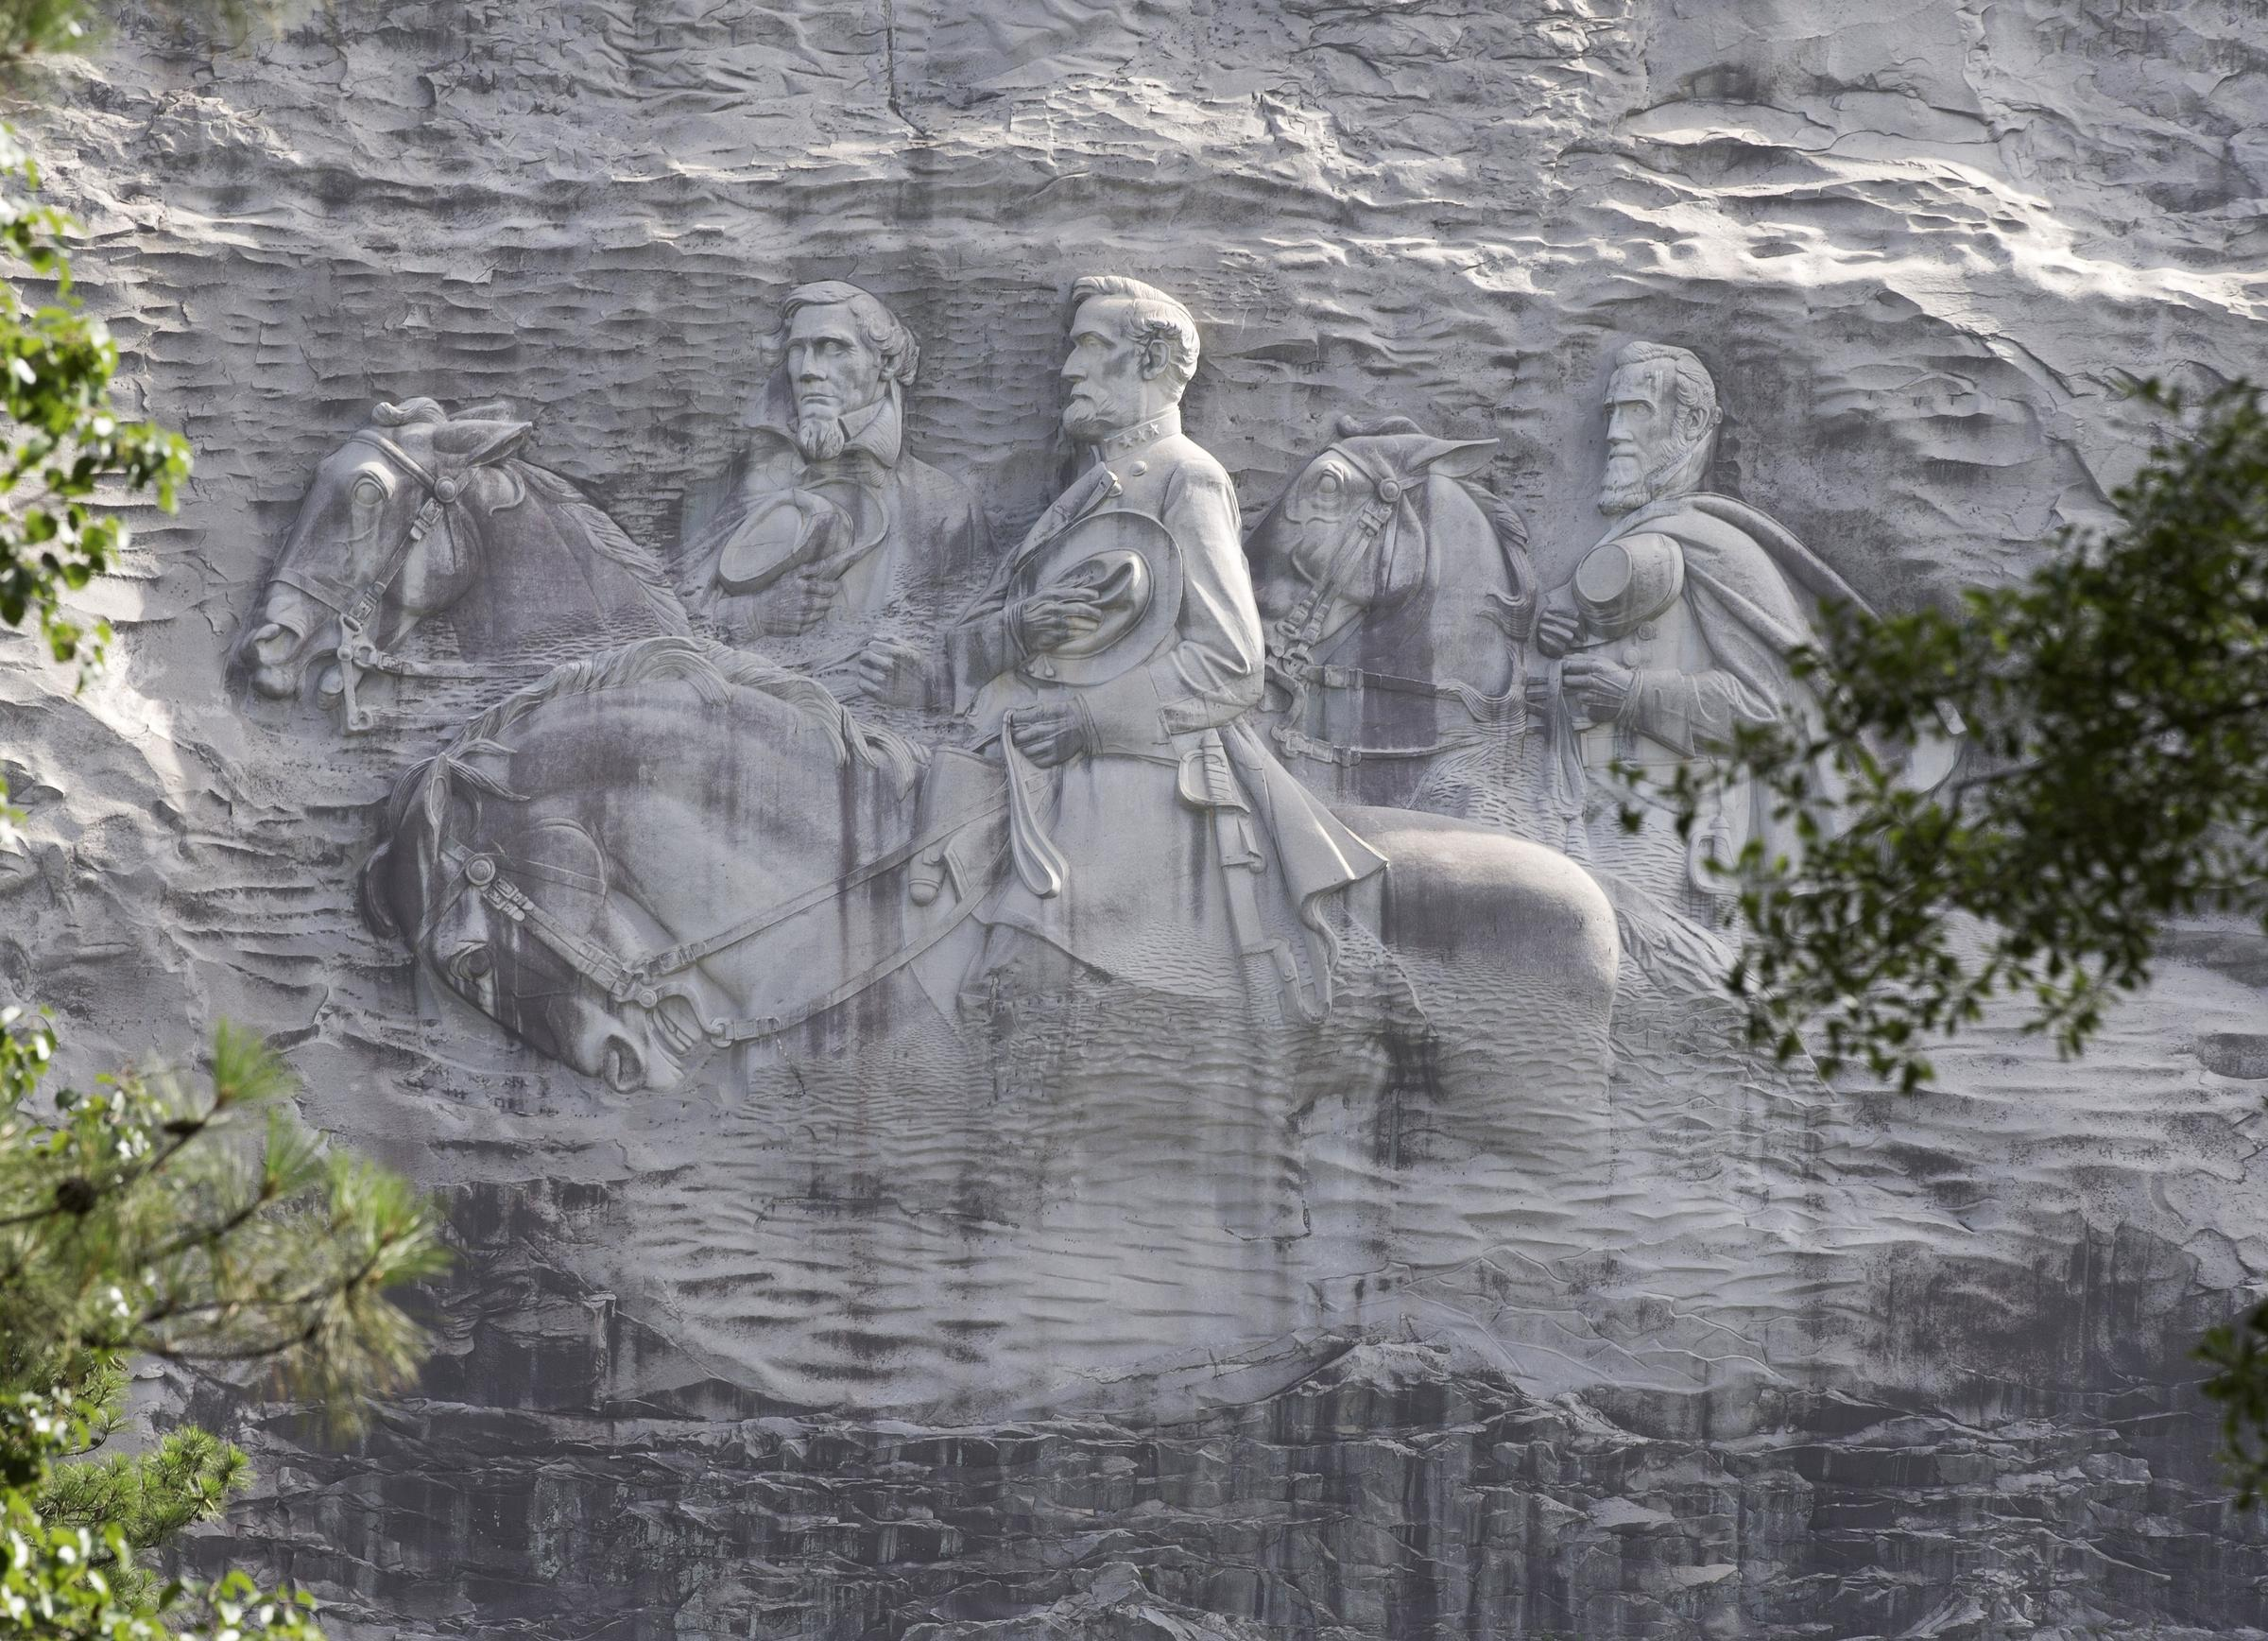 Permit for KKK cross burning atop Georgia's Stone Mountain denied